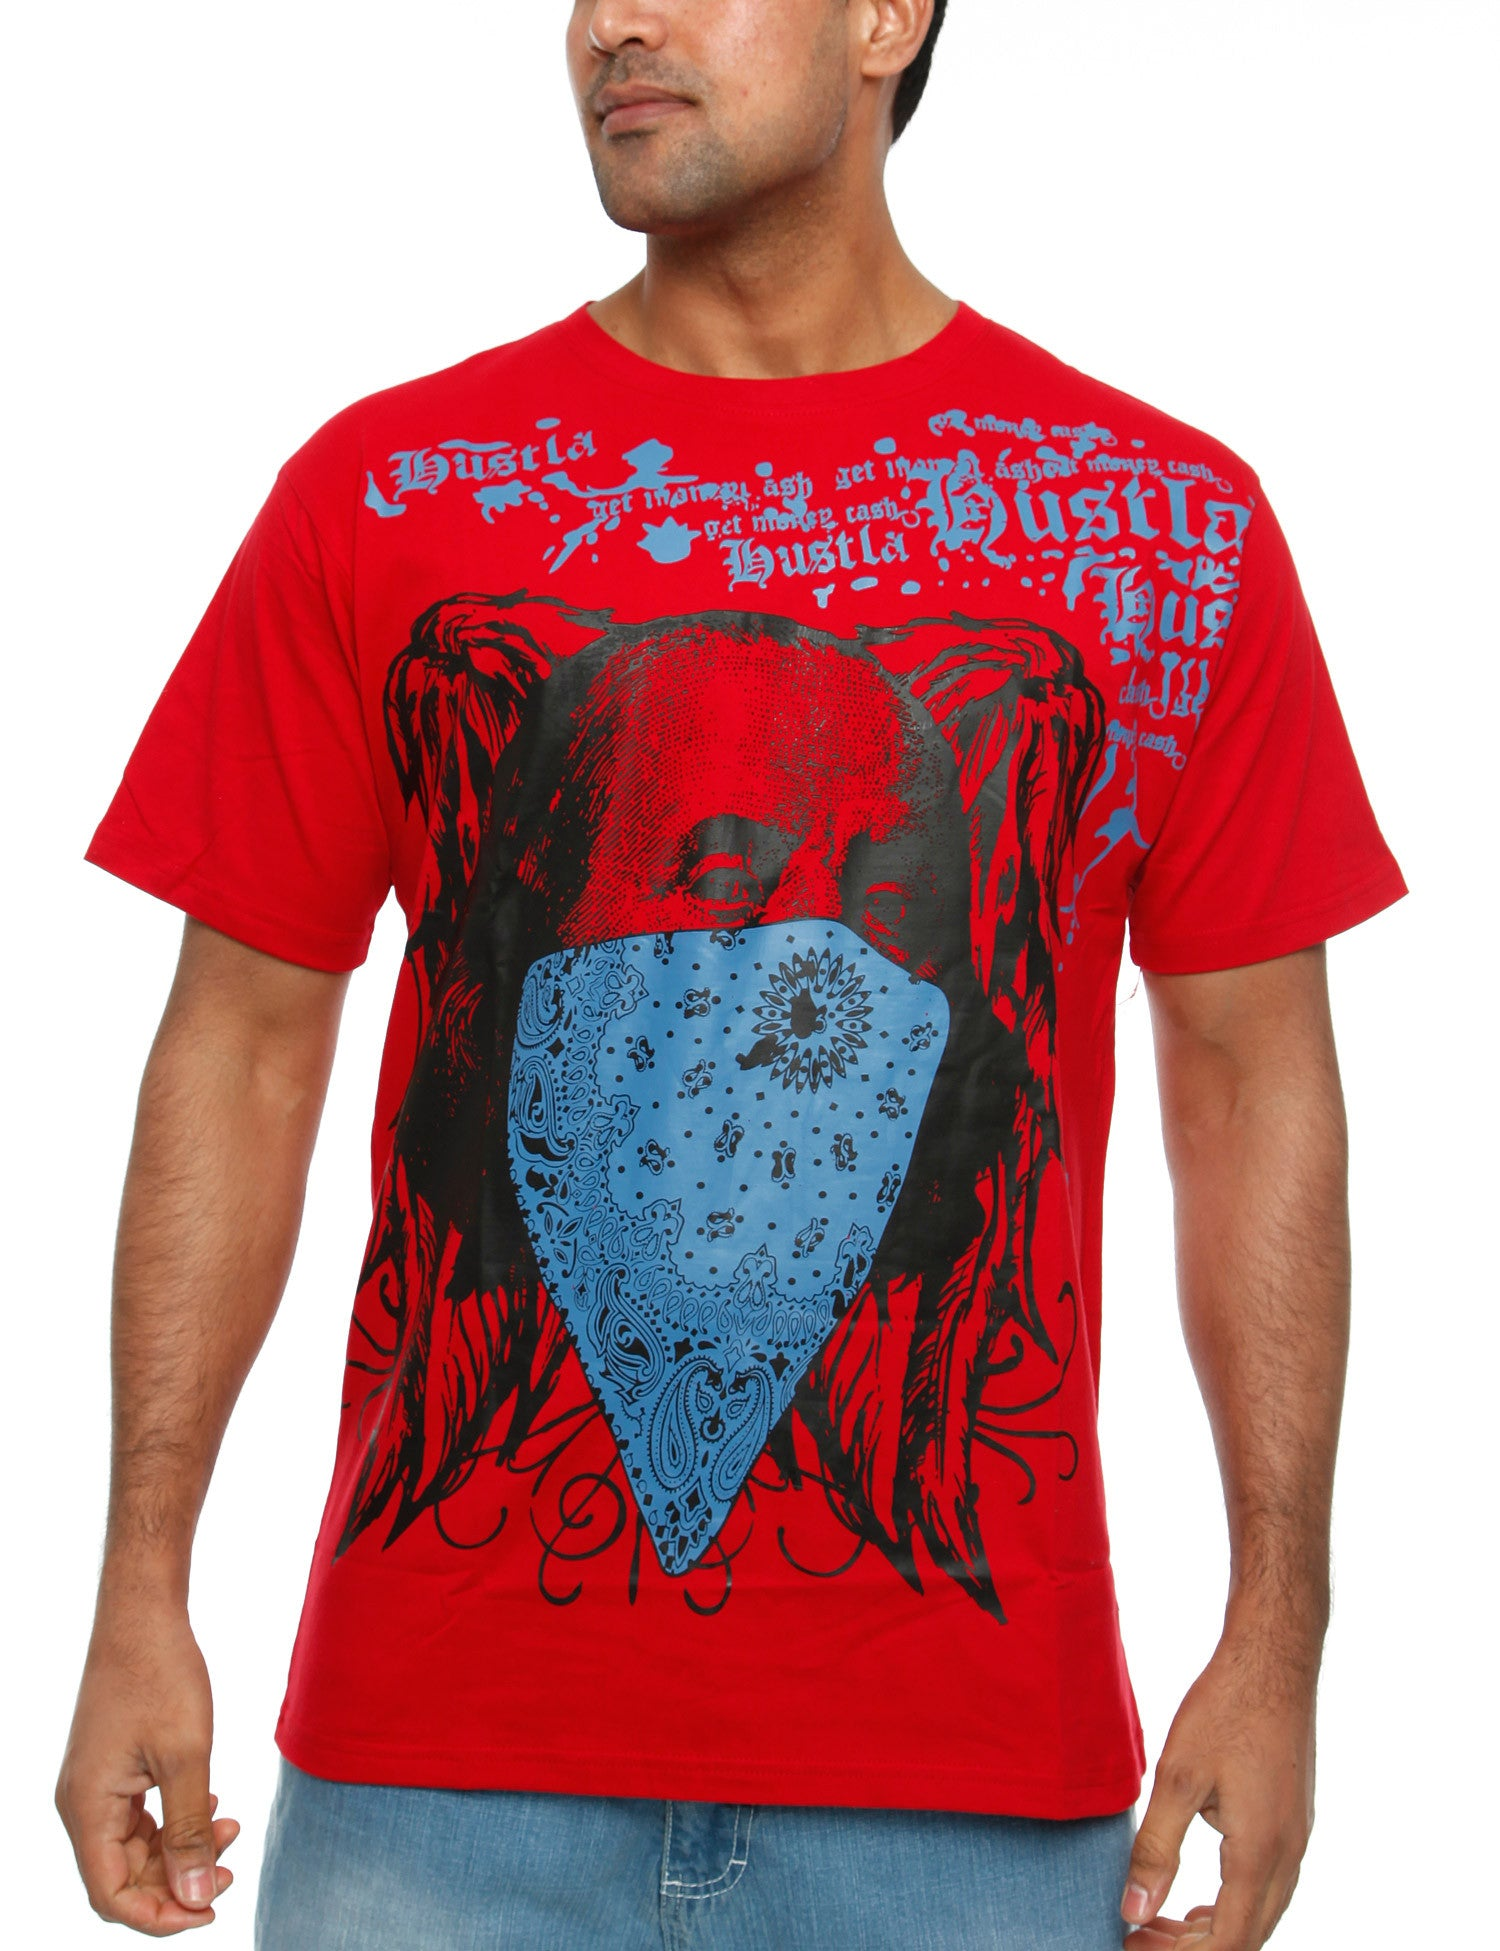 Townz Hustla T-Shirt RWT-112F Red